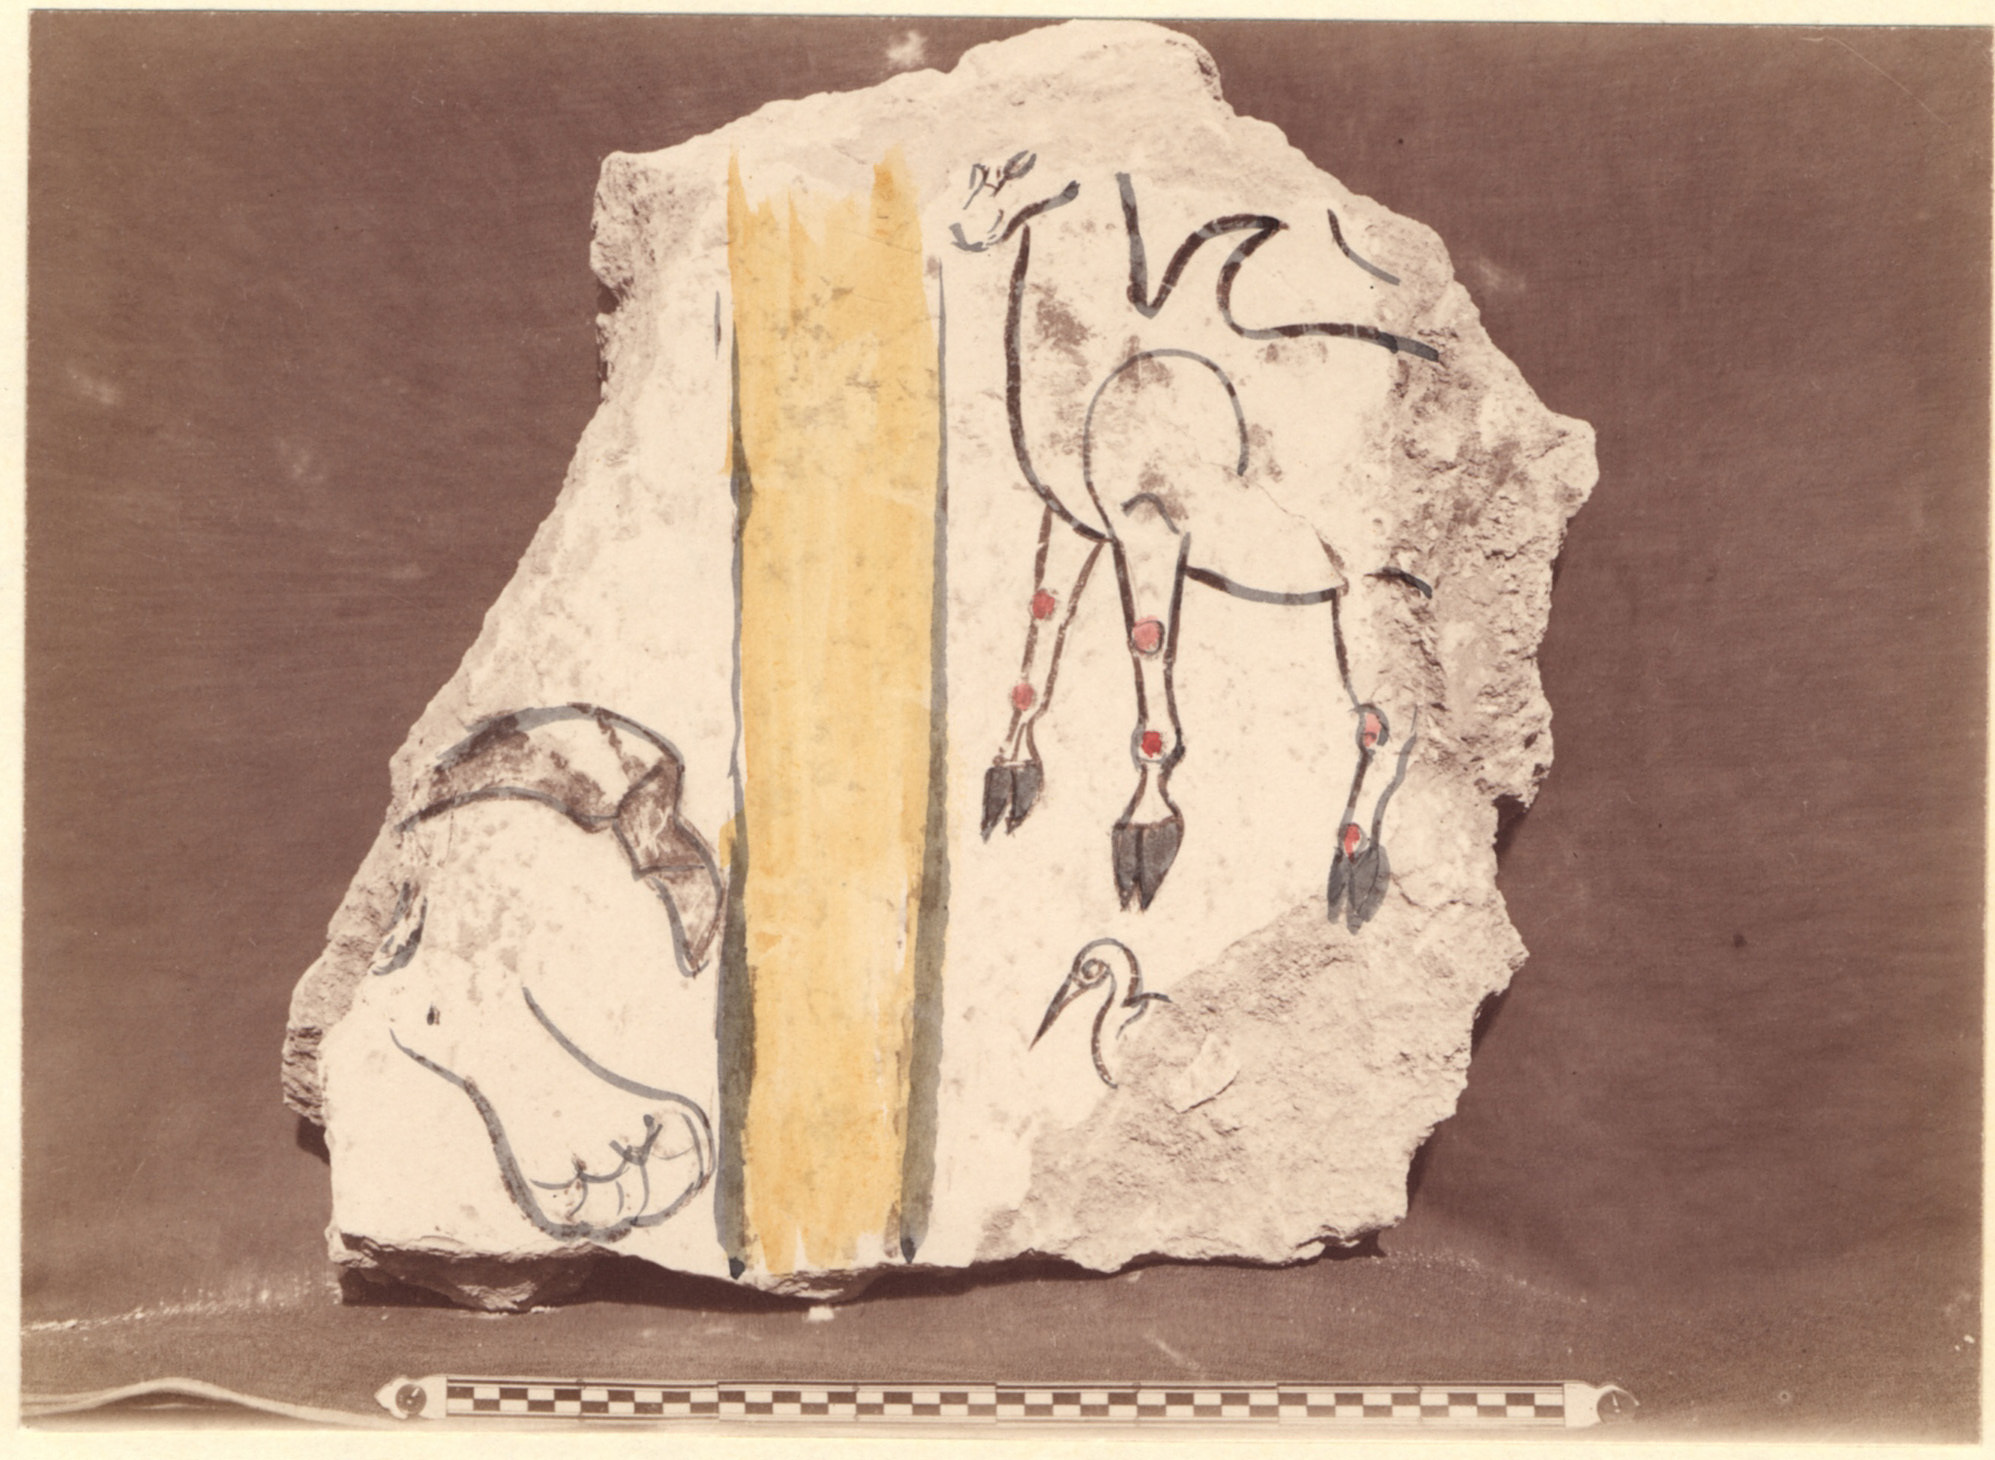 Excavation of Samarra (Iraq): Fragments of Wall-Paintings and Reconstructed Color Pattern, from the Palace of the Caliph (Dar al-Khilafa, Jawsaq al-Khaqani, Bayt al-Khalifah), Square Reception-Hall Block, Room Identified as a Harem [graphic]